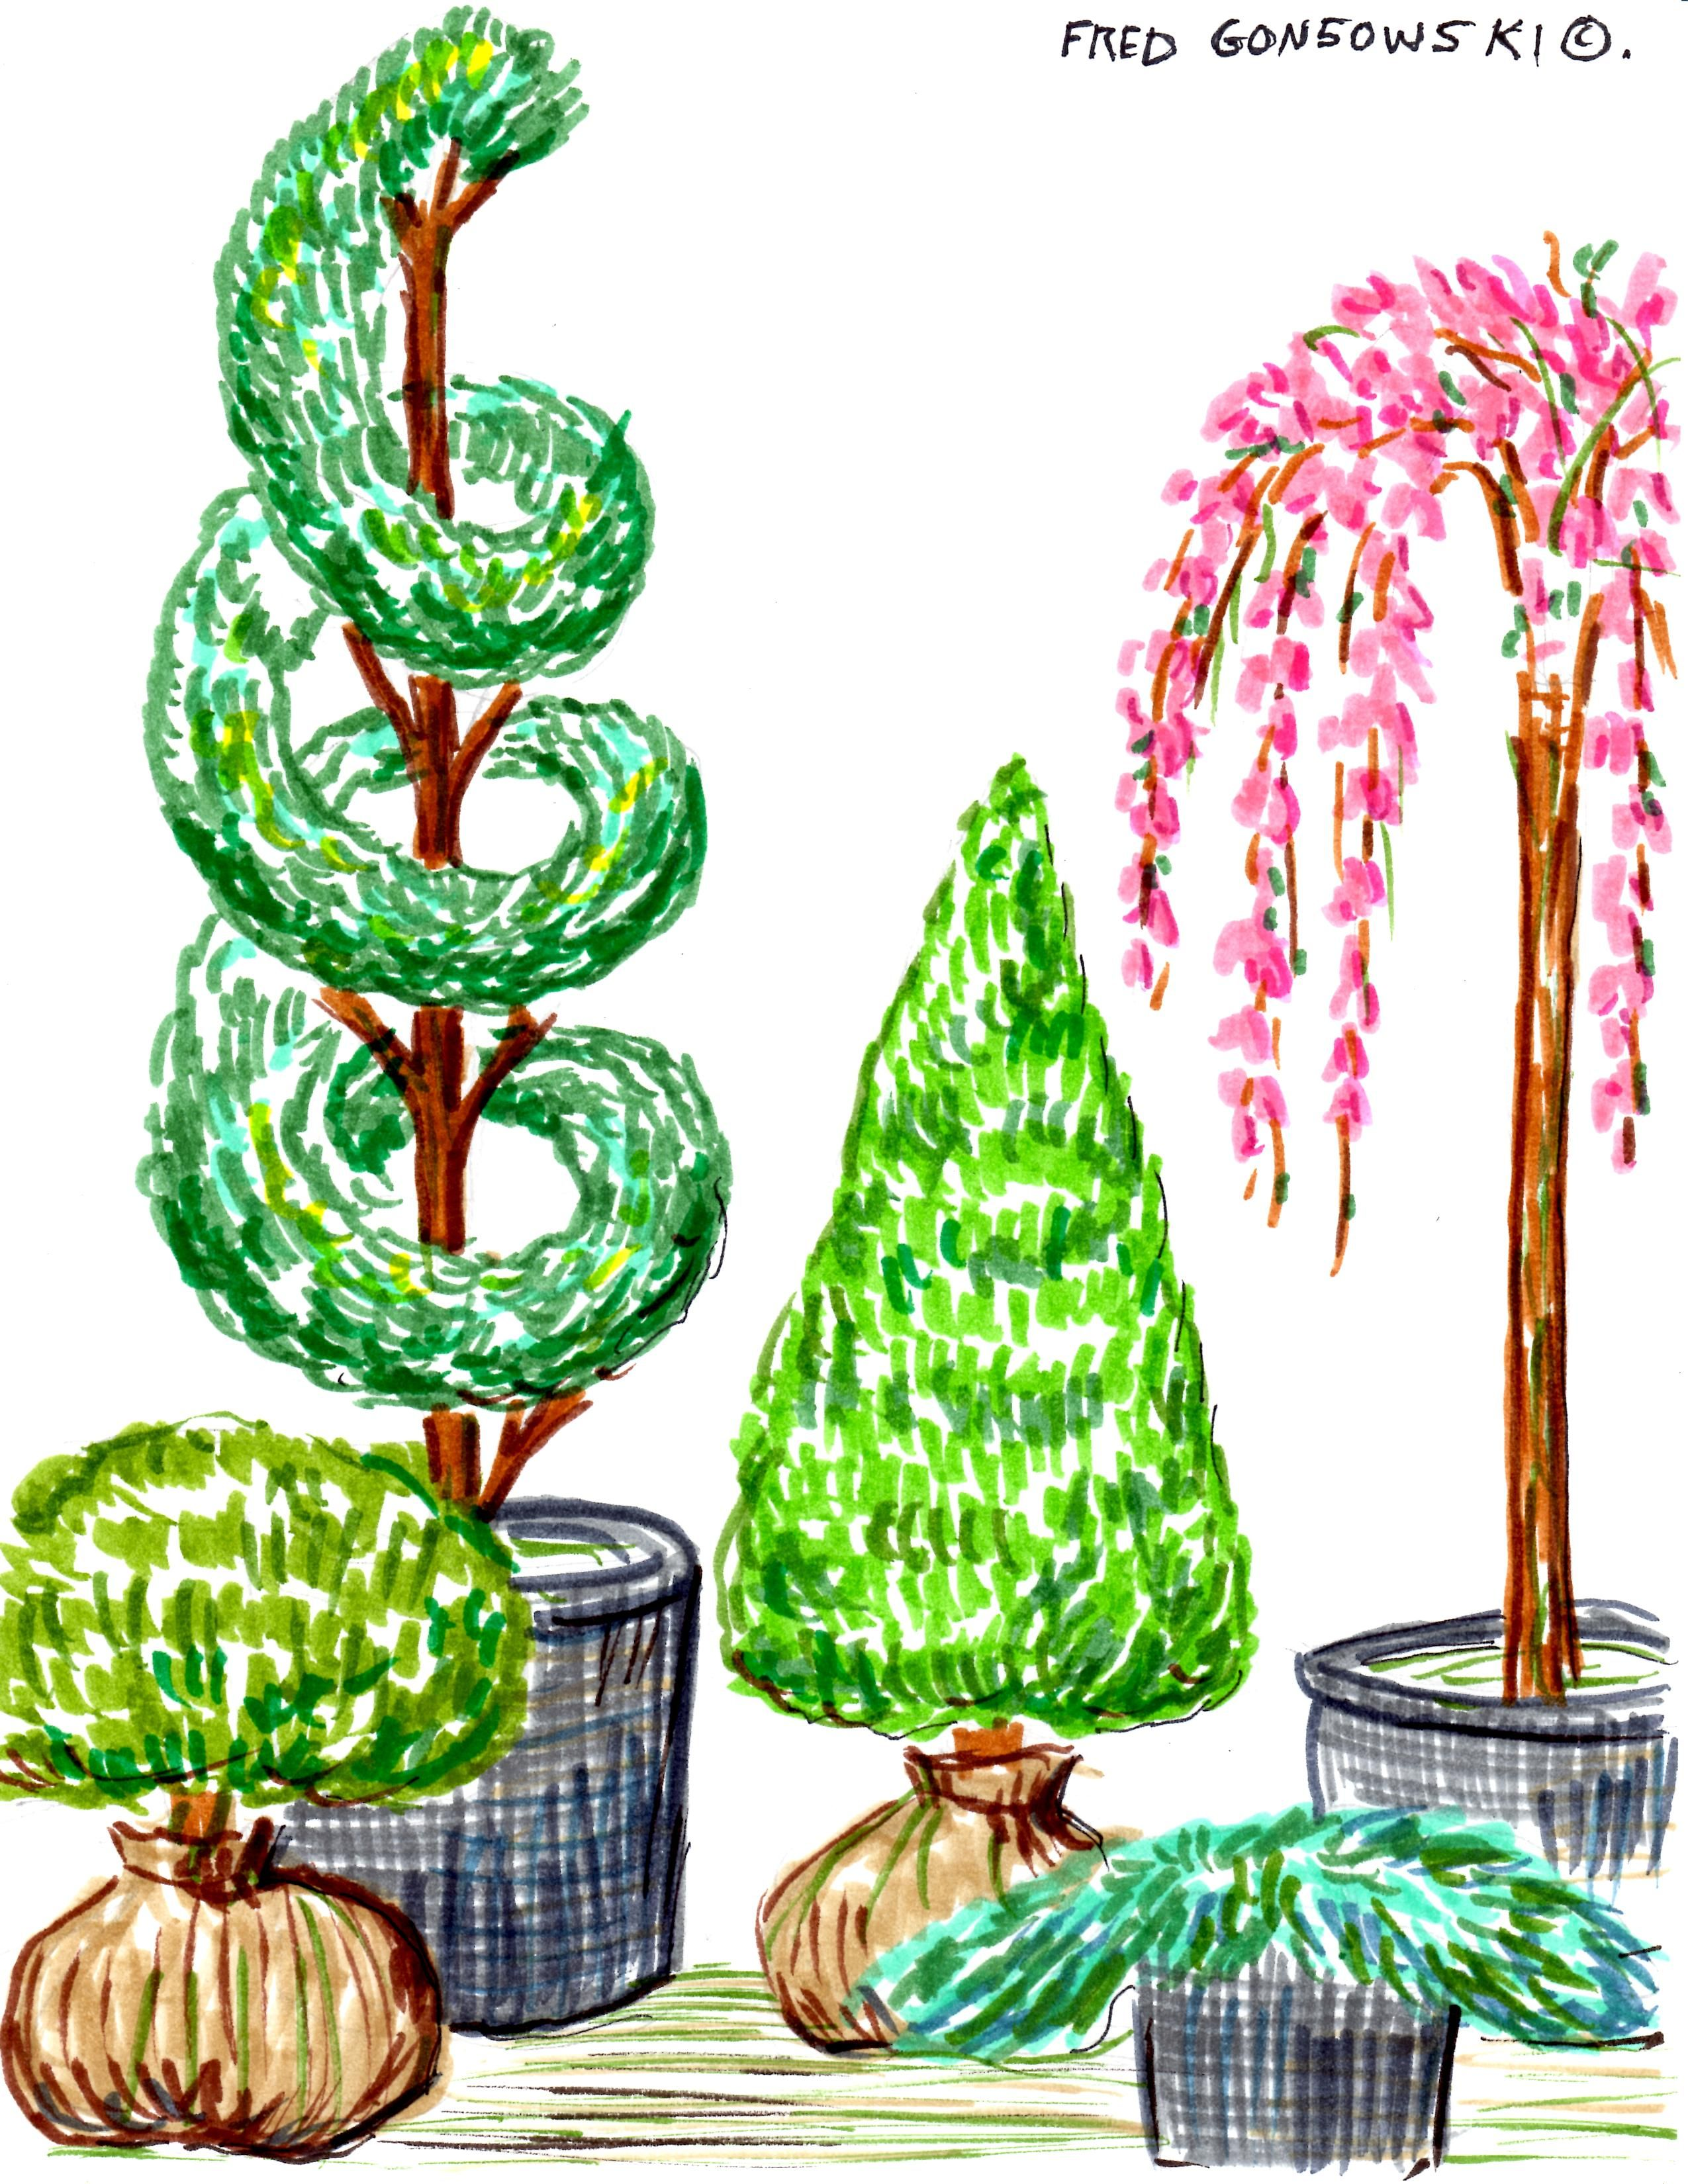 Planting Foundation Plants in Front of your Home.